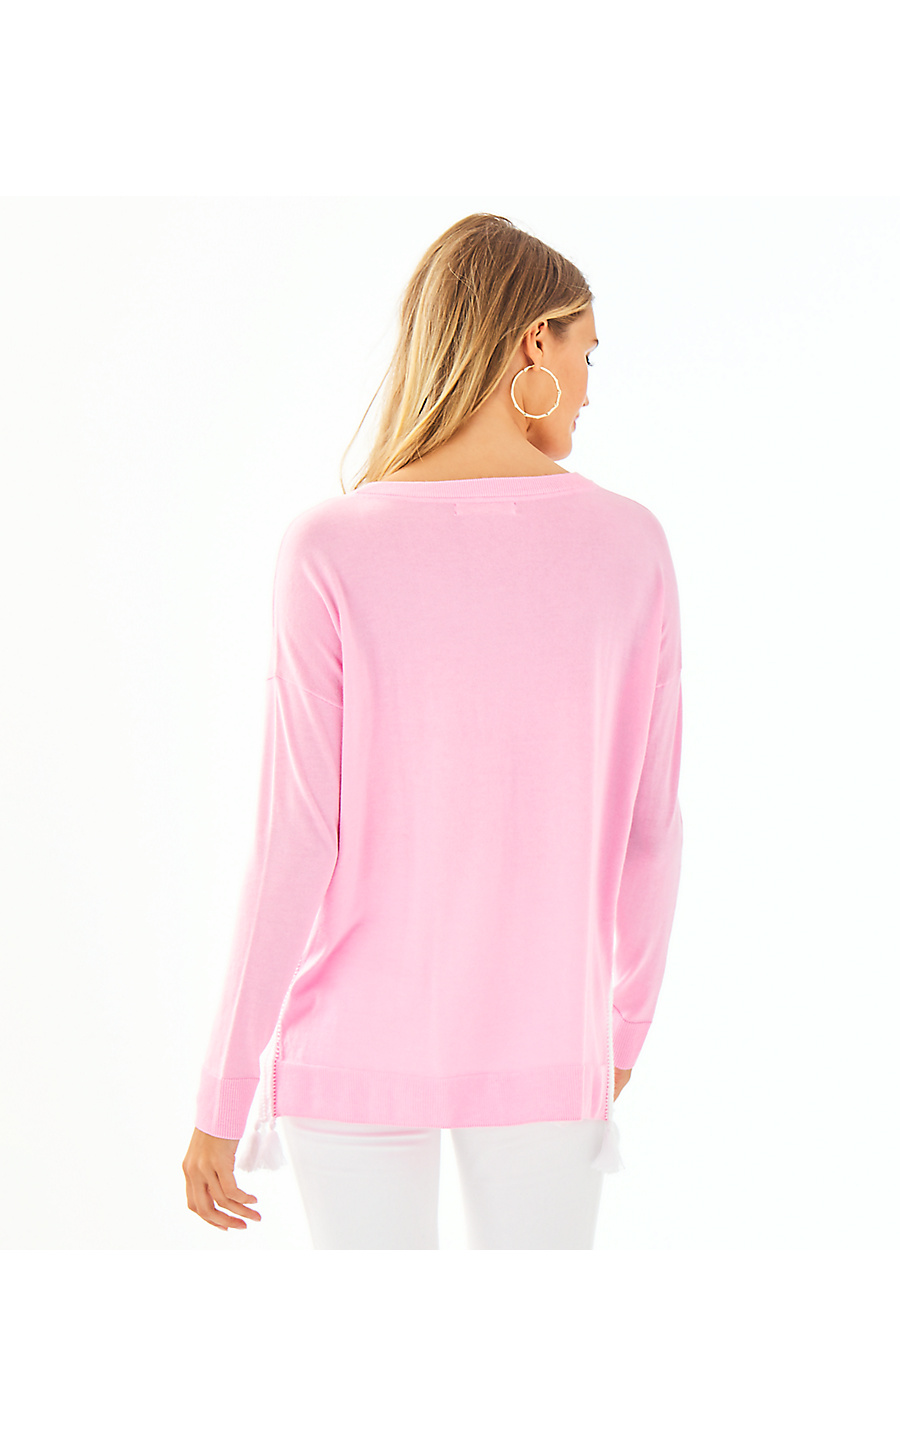 Damara Sweater